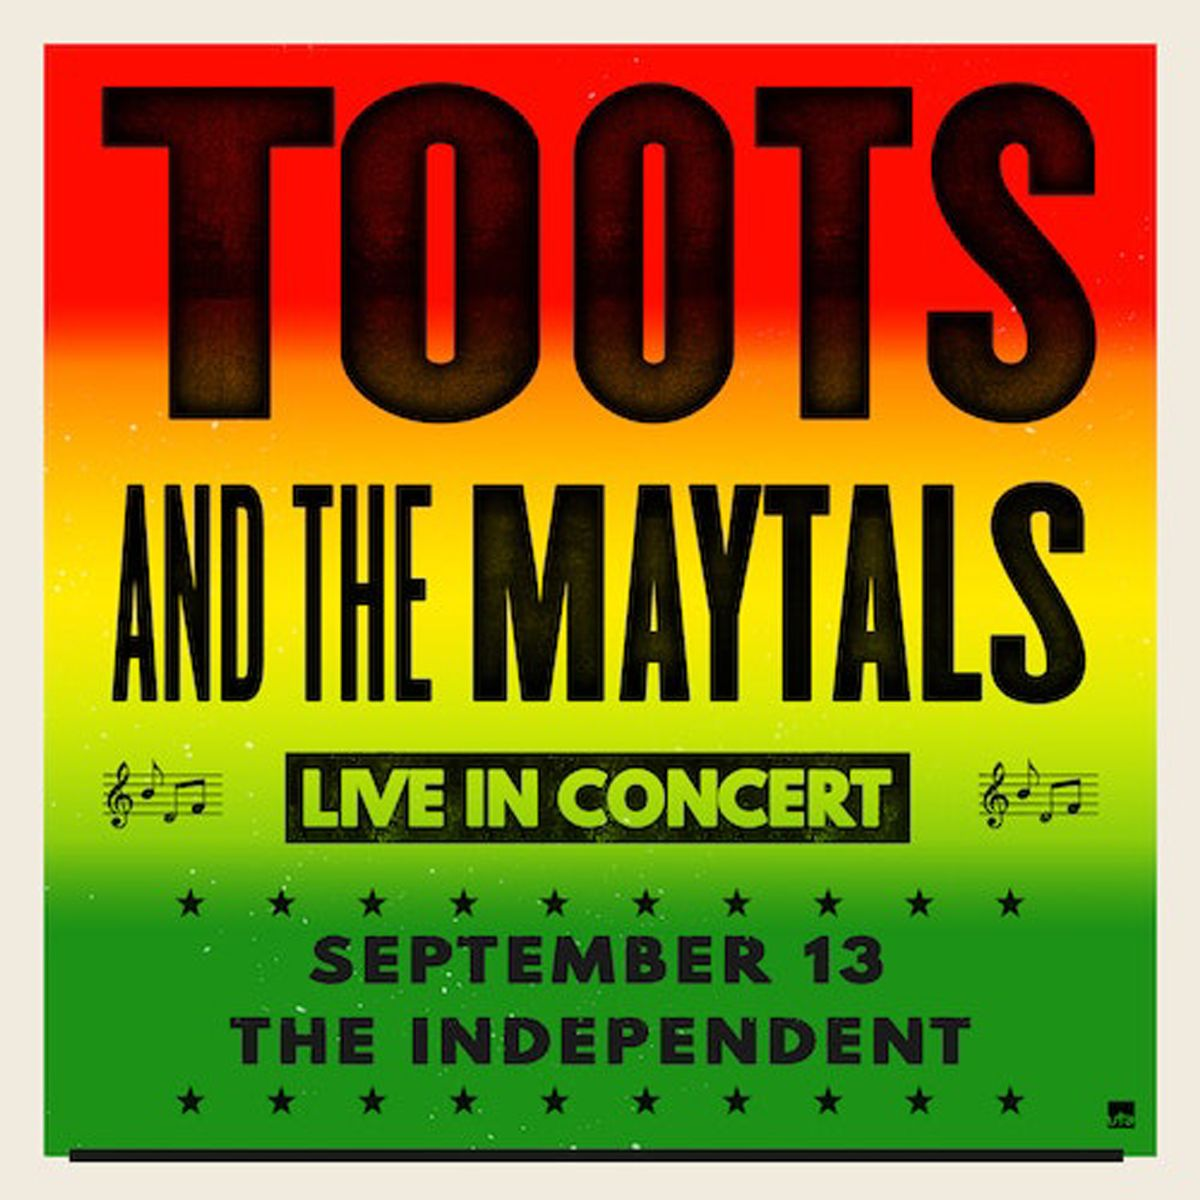 Friday, September 13: Toots and the Maytals and DJ Sep (Dub Mission) at the Independent, SF